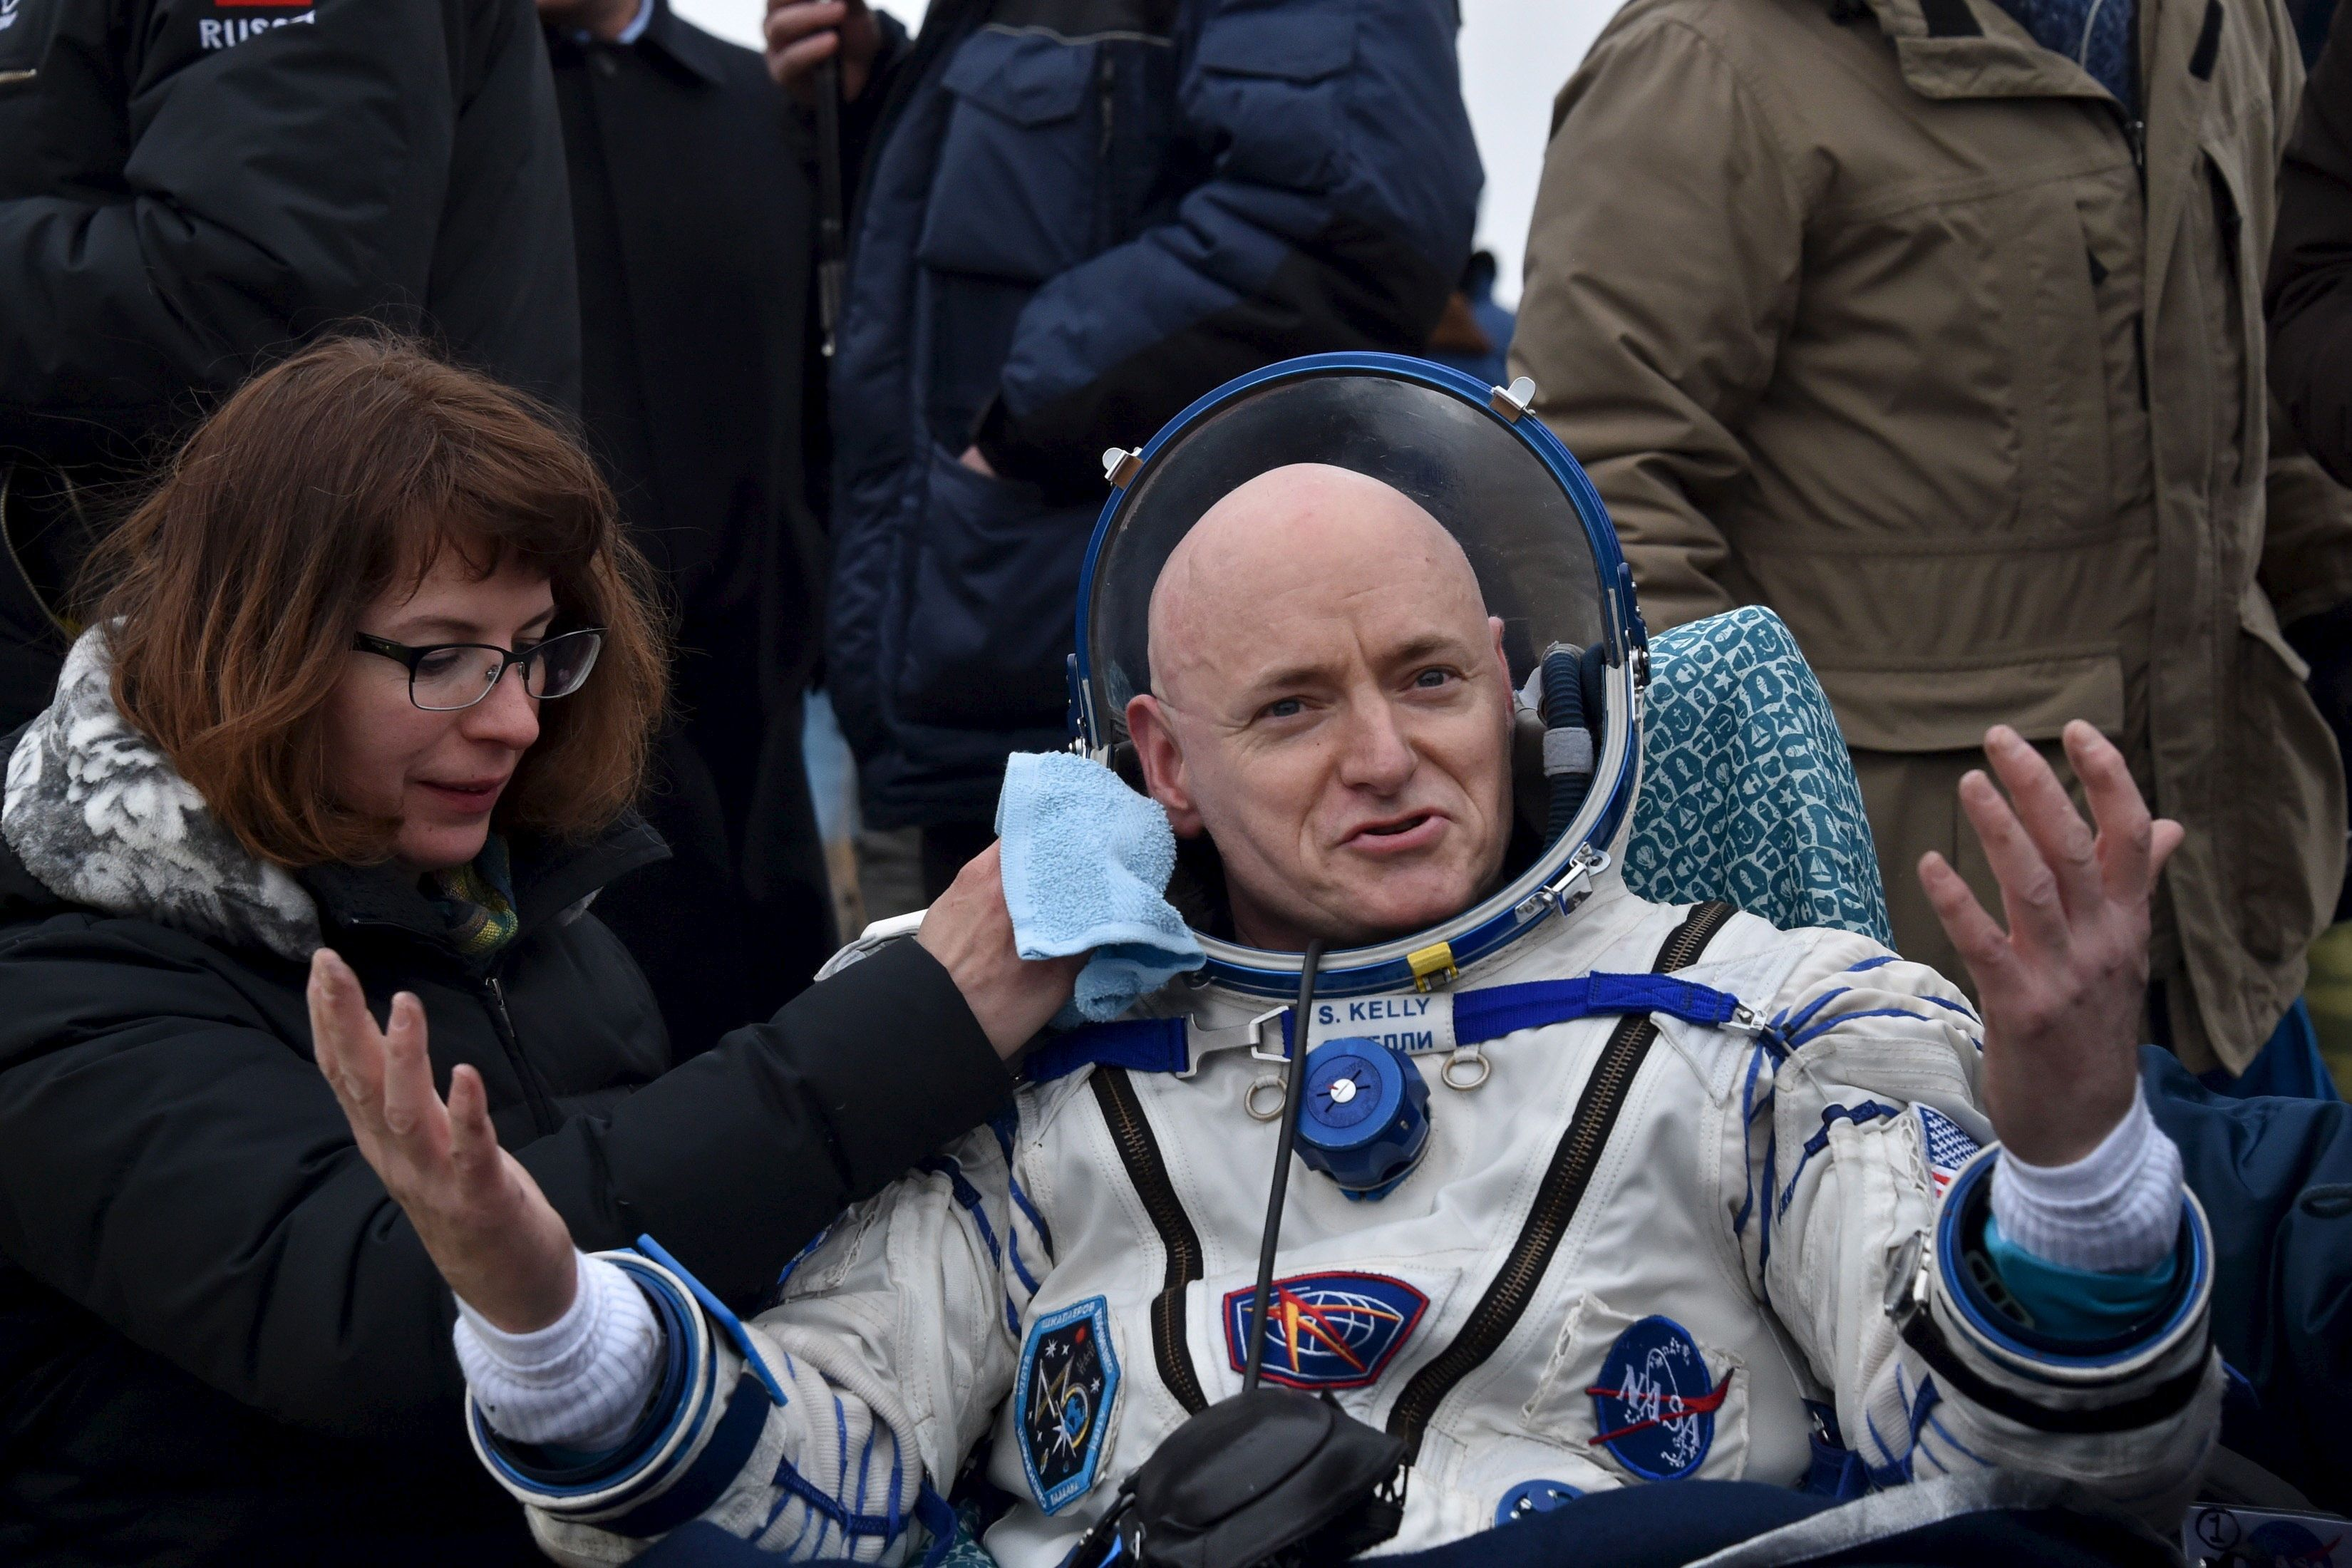 U.S. astronaut Scott Kelly reacts shortly after landing near the town of Dzhezkazgan (Zhezkazgan), Kazakhstan, March 2, 2016. REUTERS/Kirill Kudryavtsev/Pool